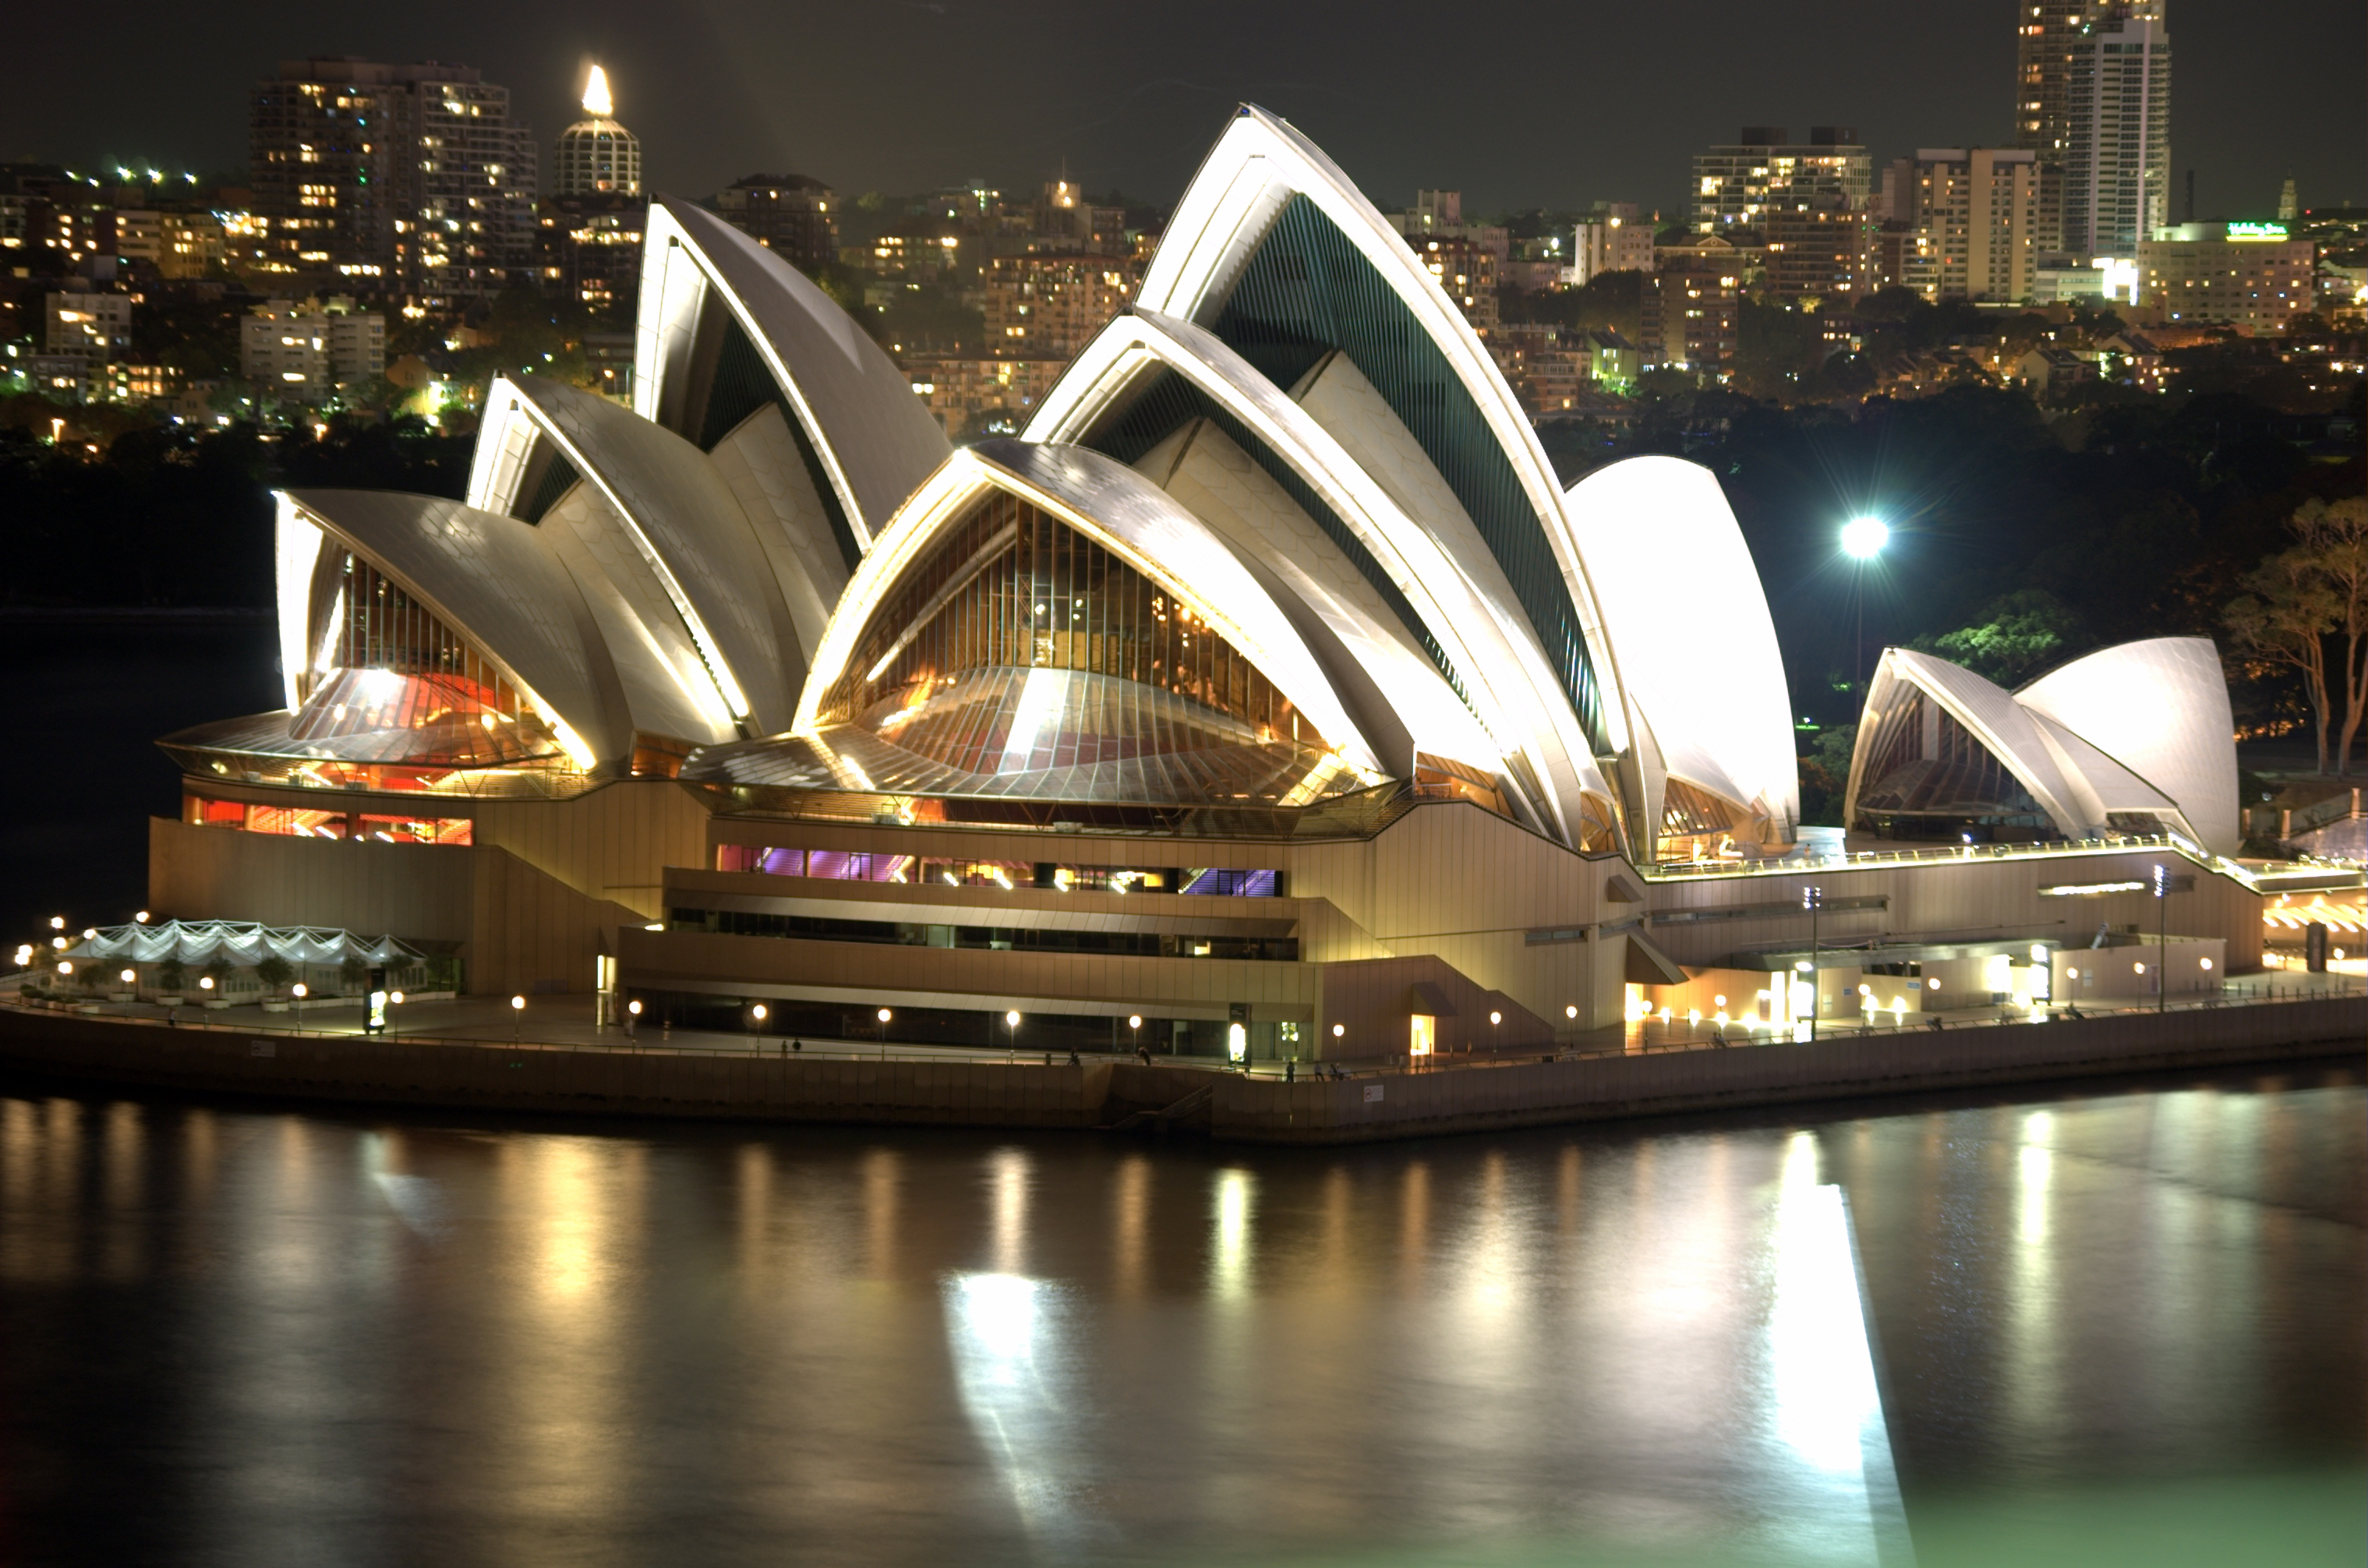 Brilliant Sydney Opera House Night 3038 x 2012 · 3668 kB · jpeg